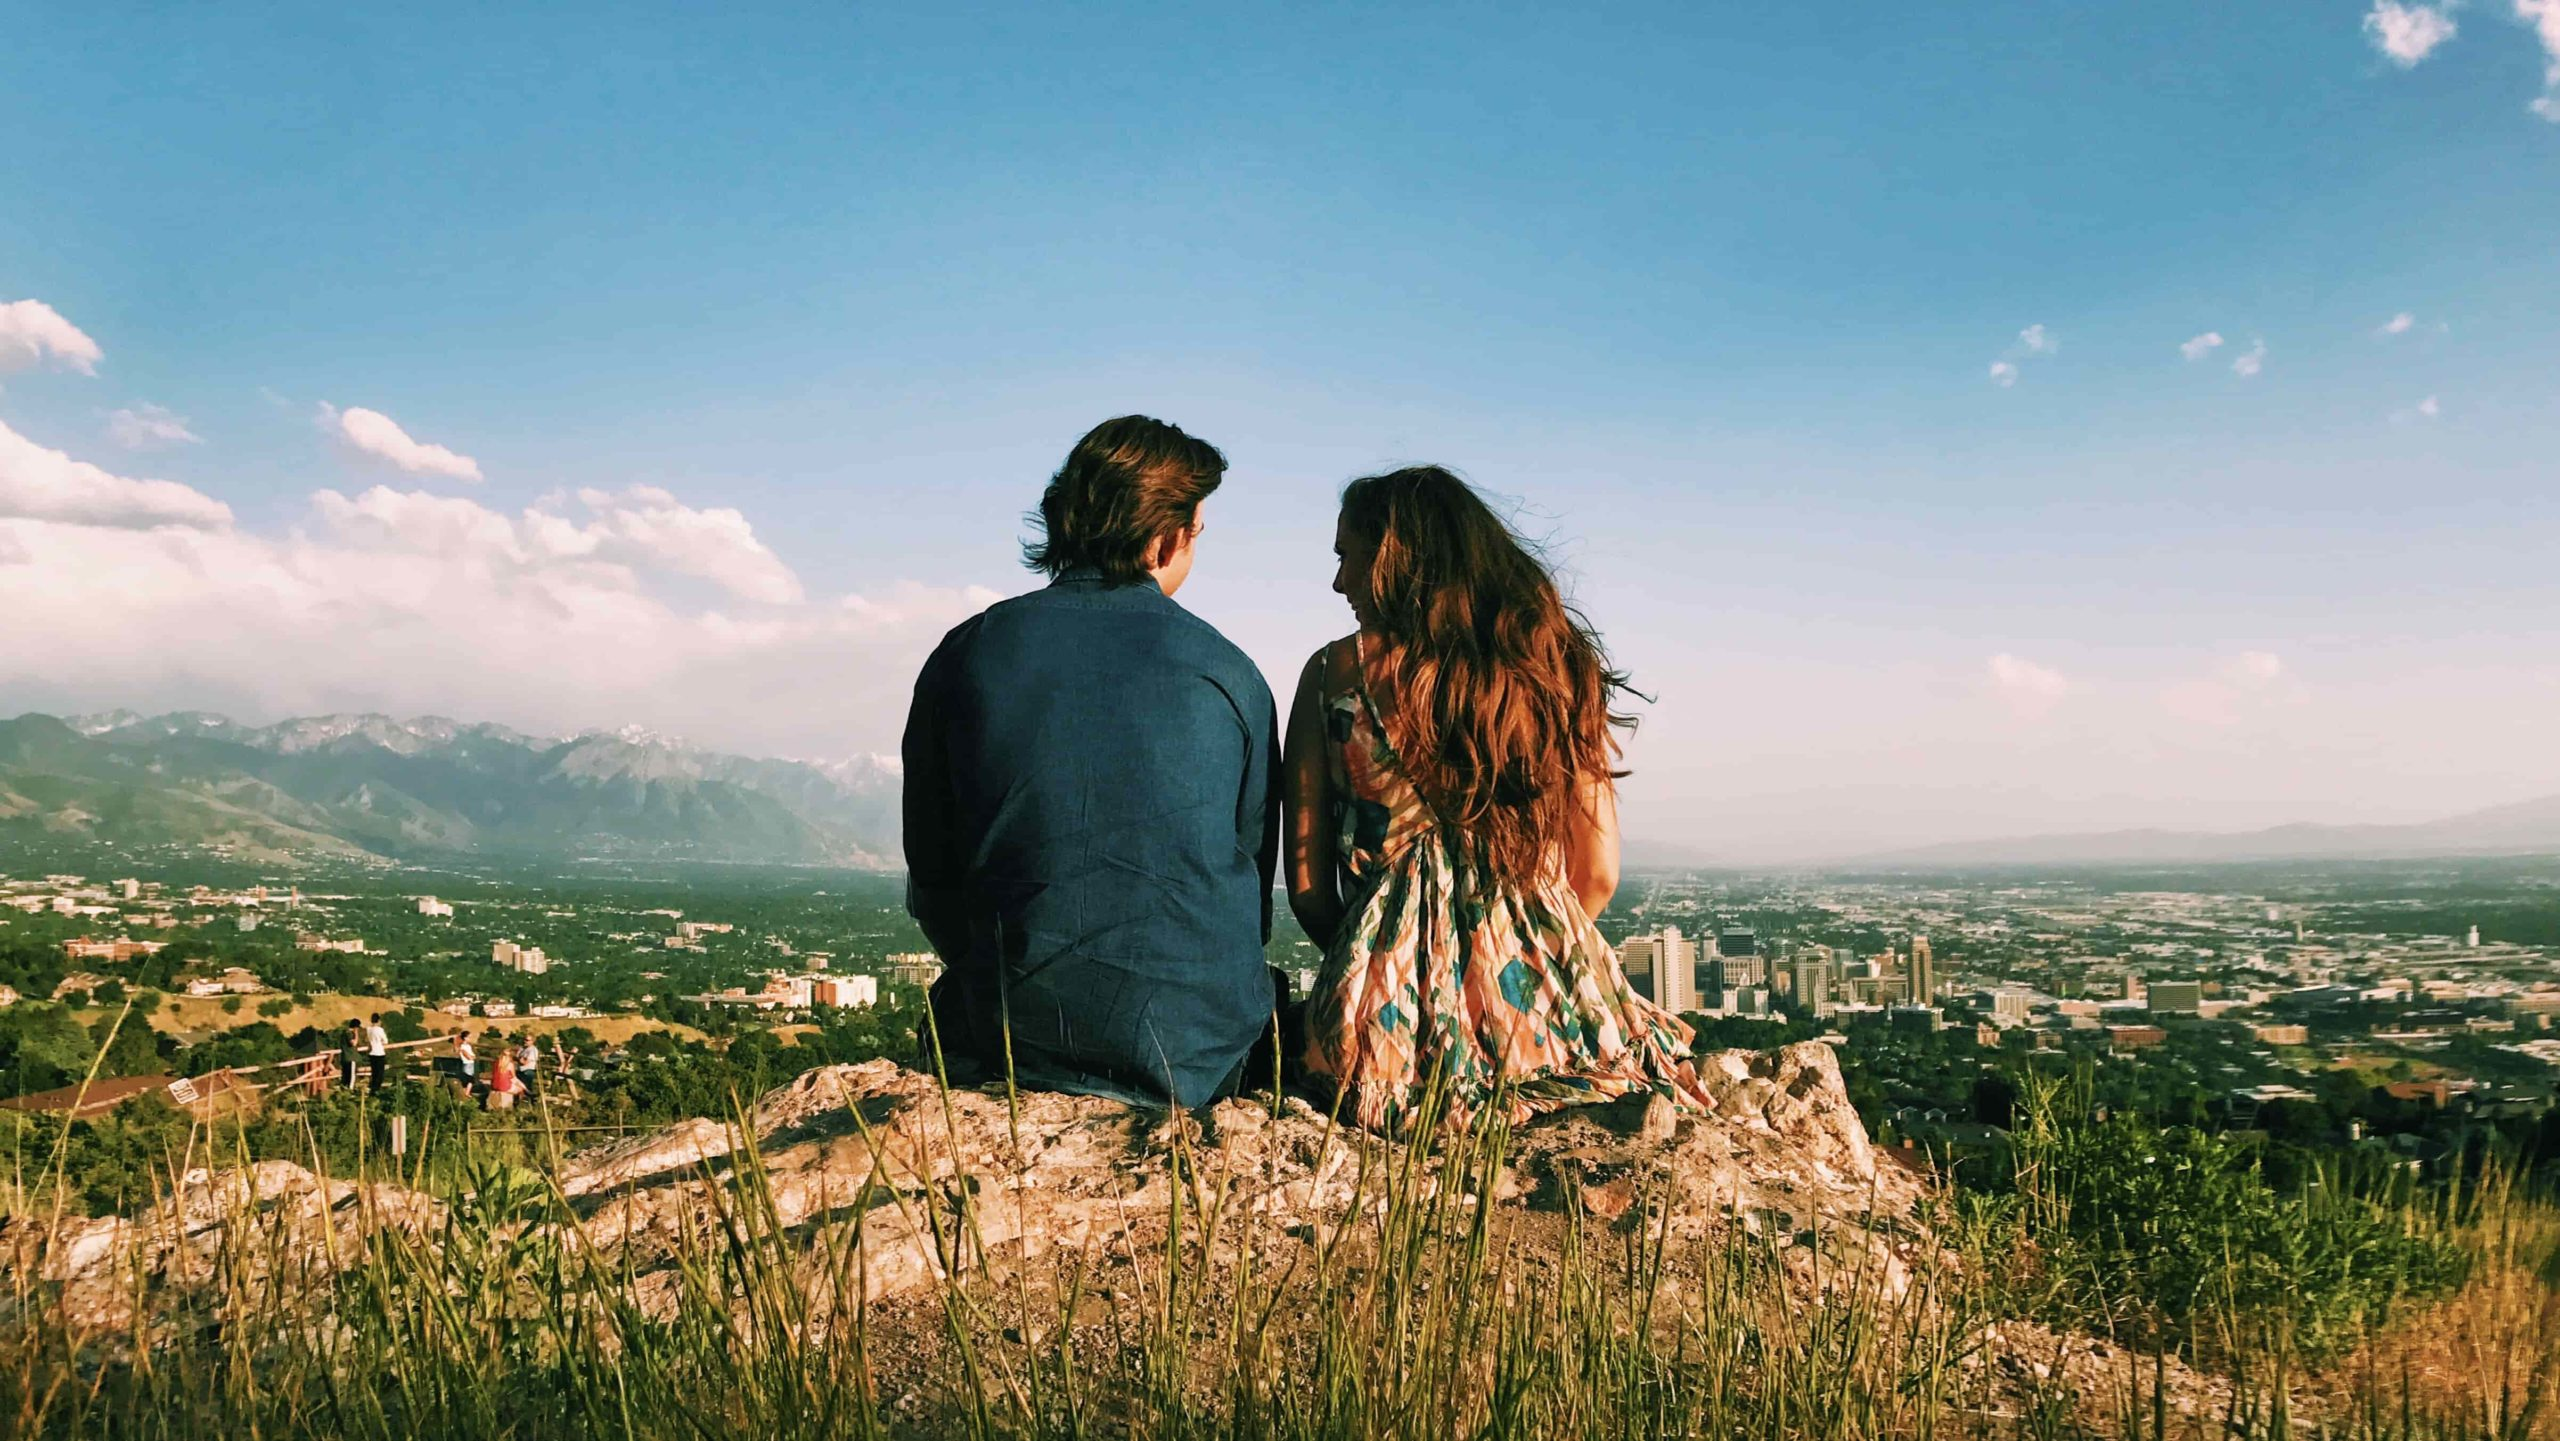 romantic couple on hill taking